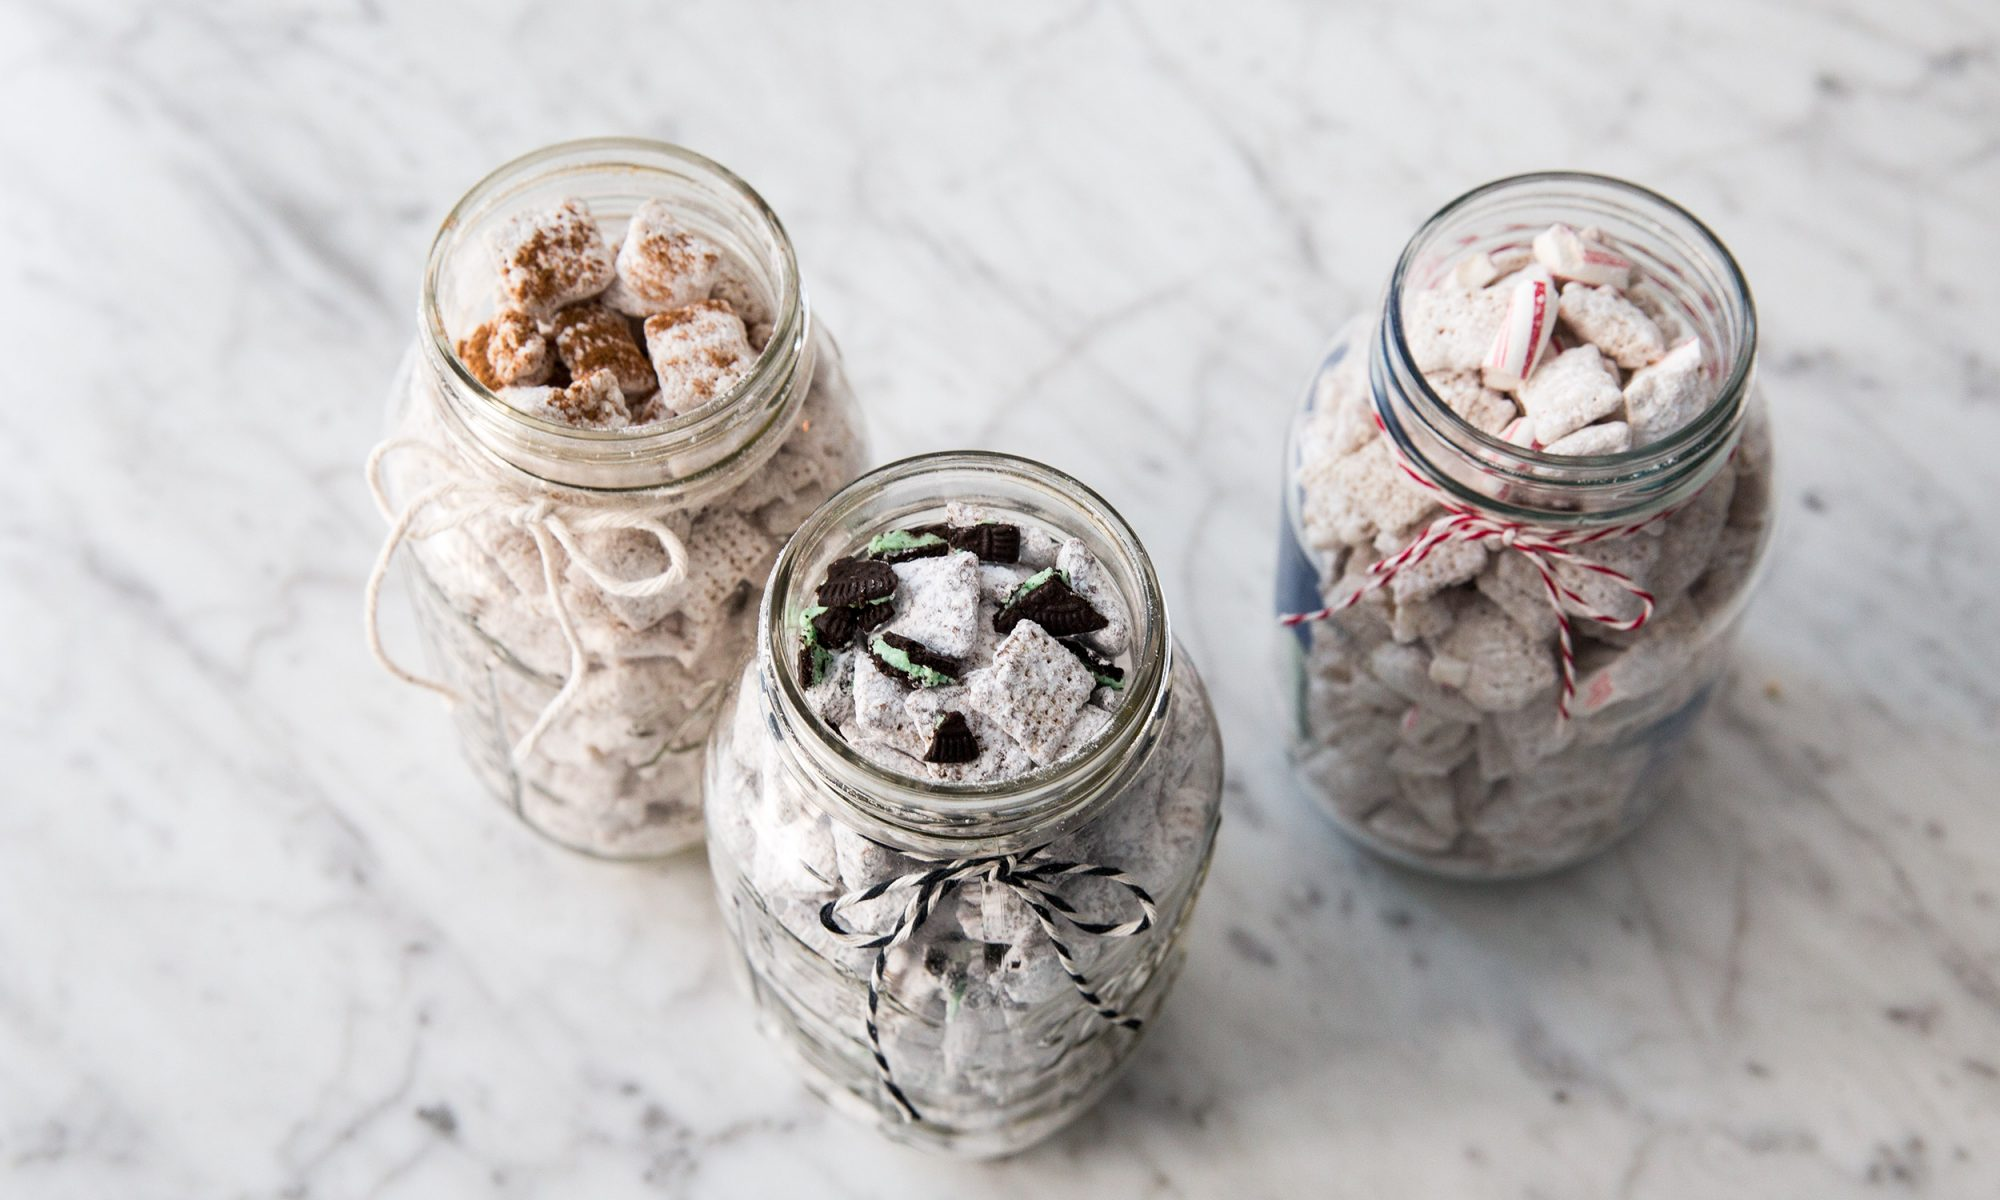 Celebrate the Holidays with These Puppy Chow Recipes